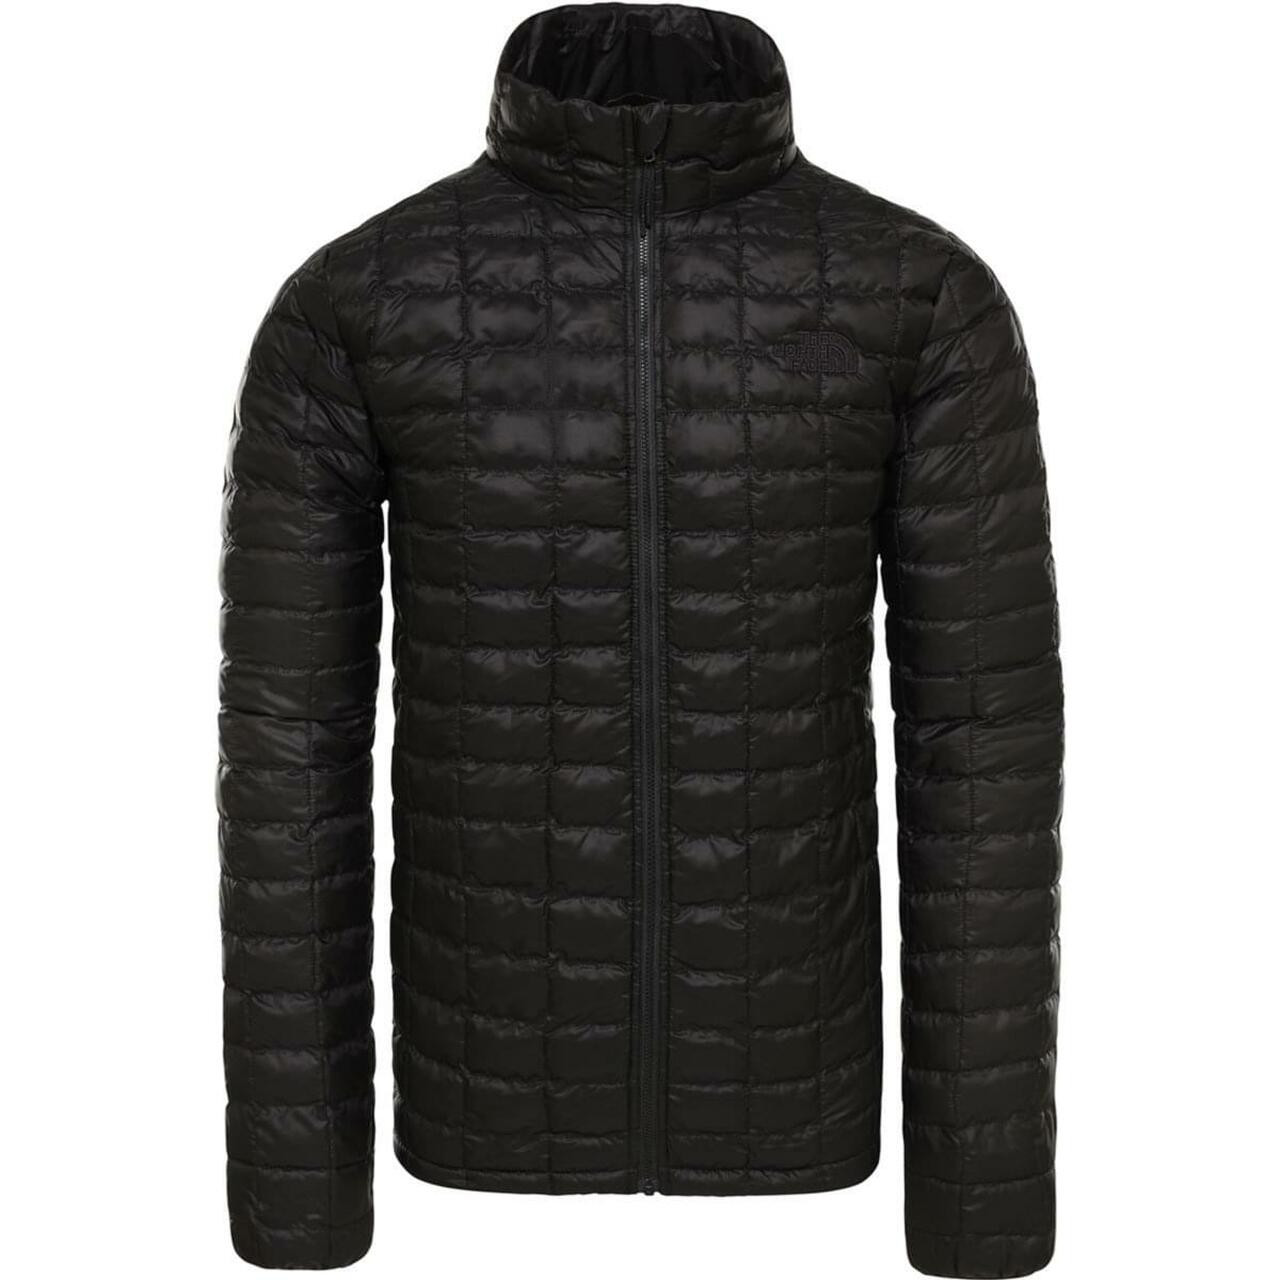 The North Face Eco Thermoball Women's Jacket - Online at Mountain Mail Order South Africa